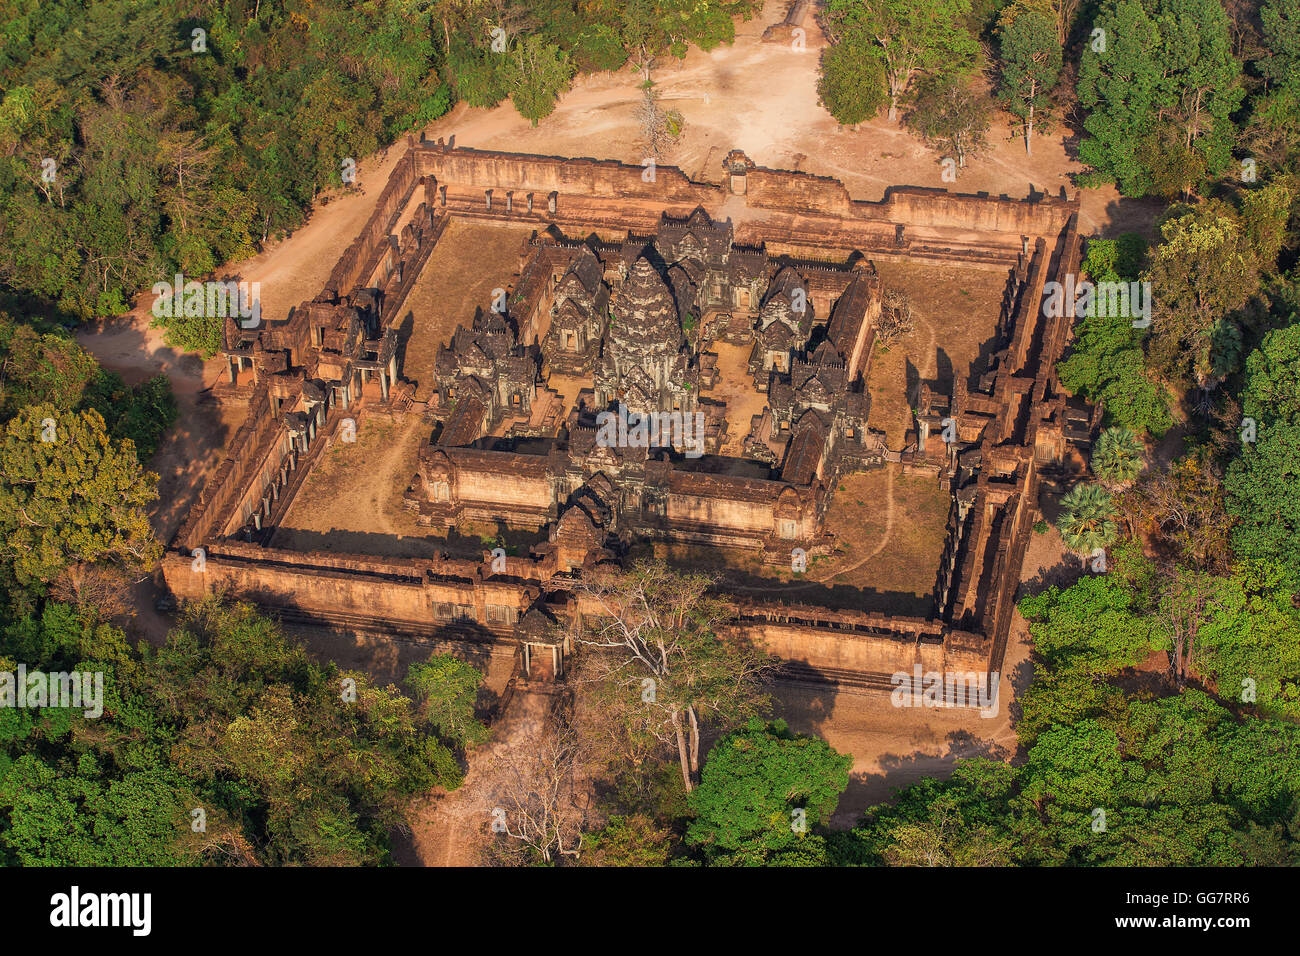 One of the amazing temples inflight, Siem reap, Cambodia. - Stock Image